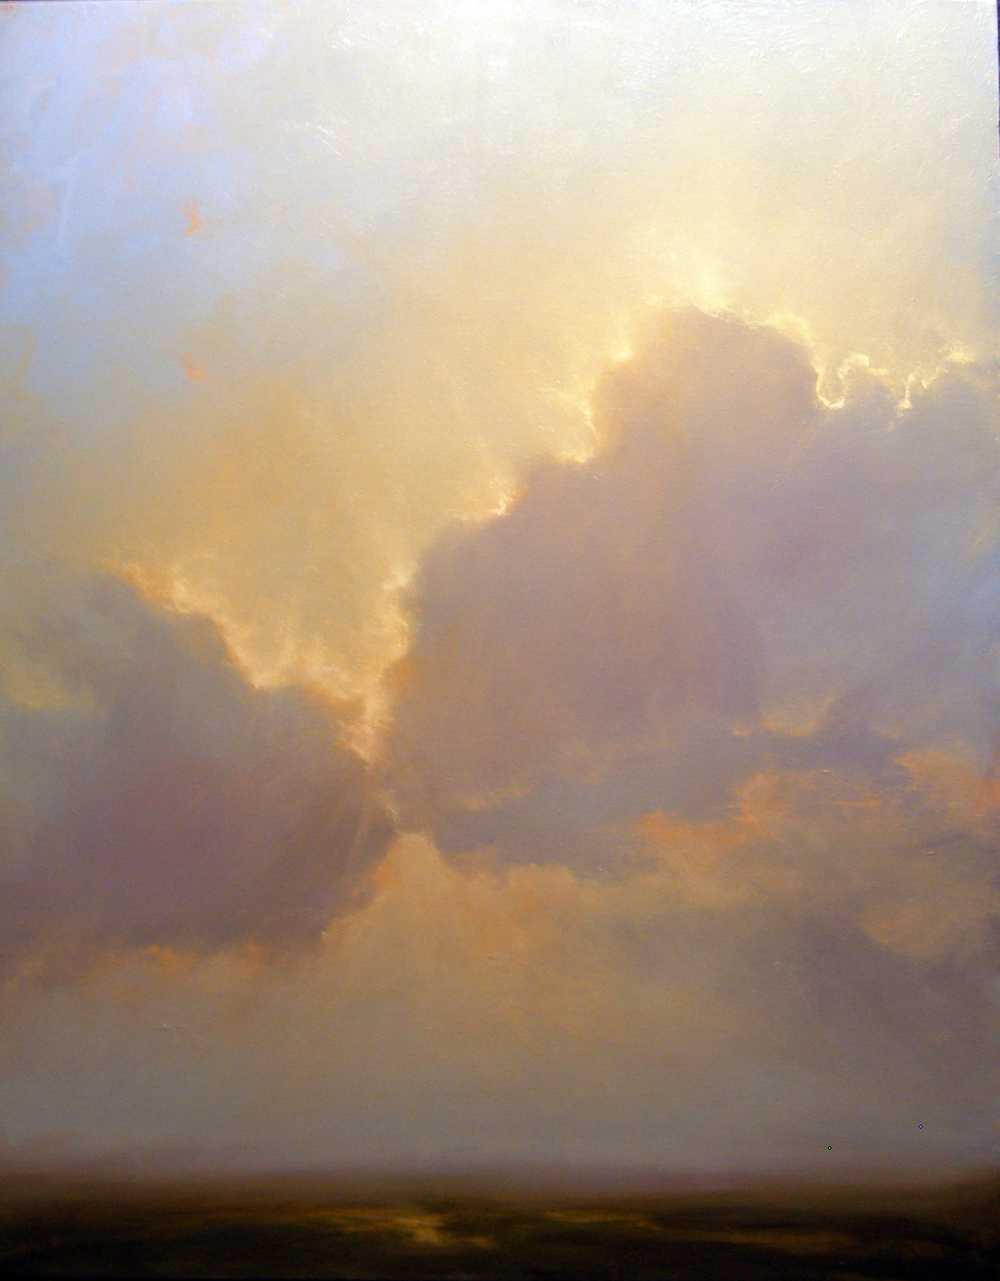 I'm a painter. I use the sky in my paintings as a metaphor for consciousness and approach painting clouds very much the same way as I would if I were painting someone's portrait. Clouds are in constant motion, always changing form and evolving, always beginning and ending simultaneously.